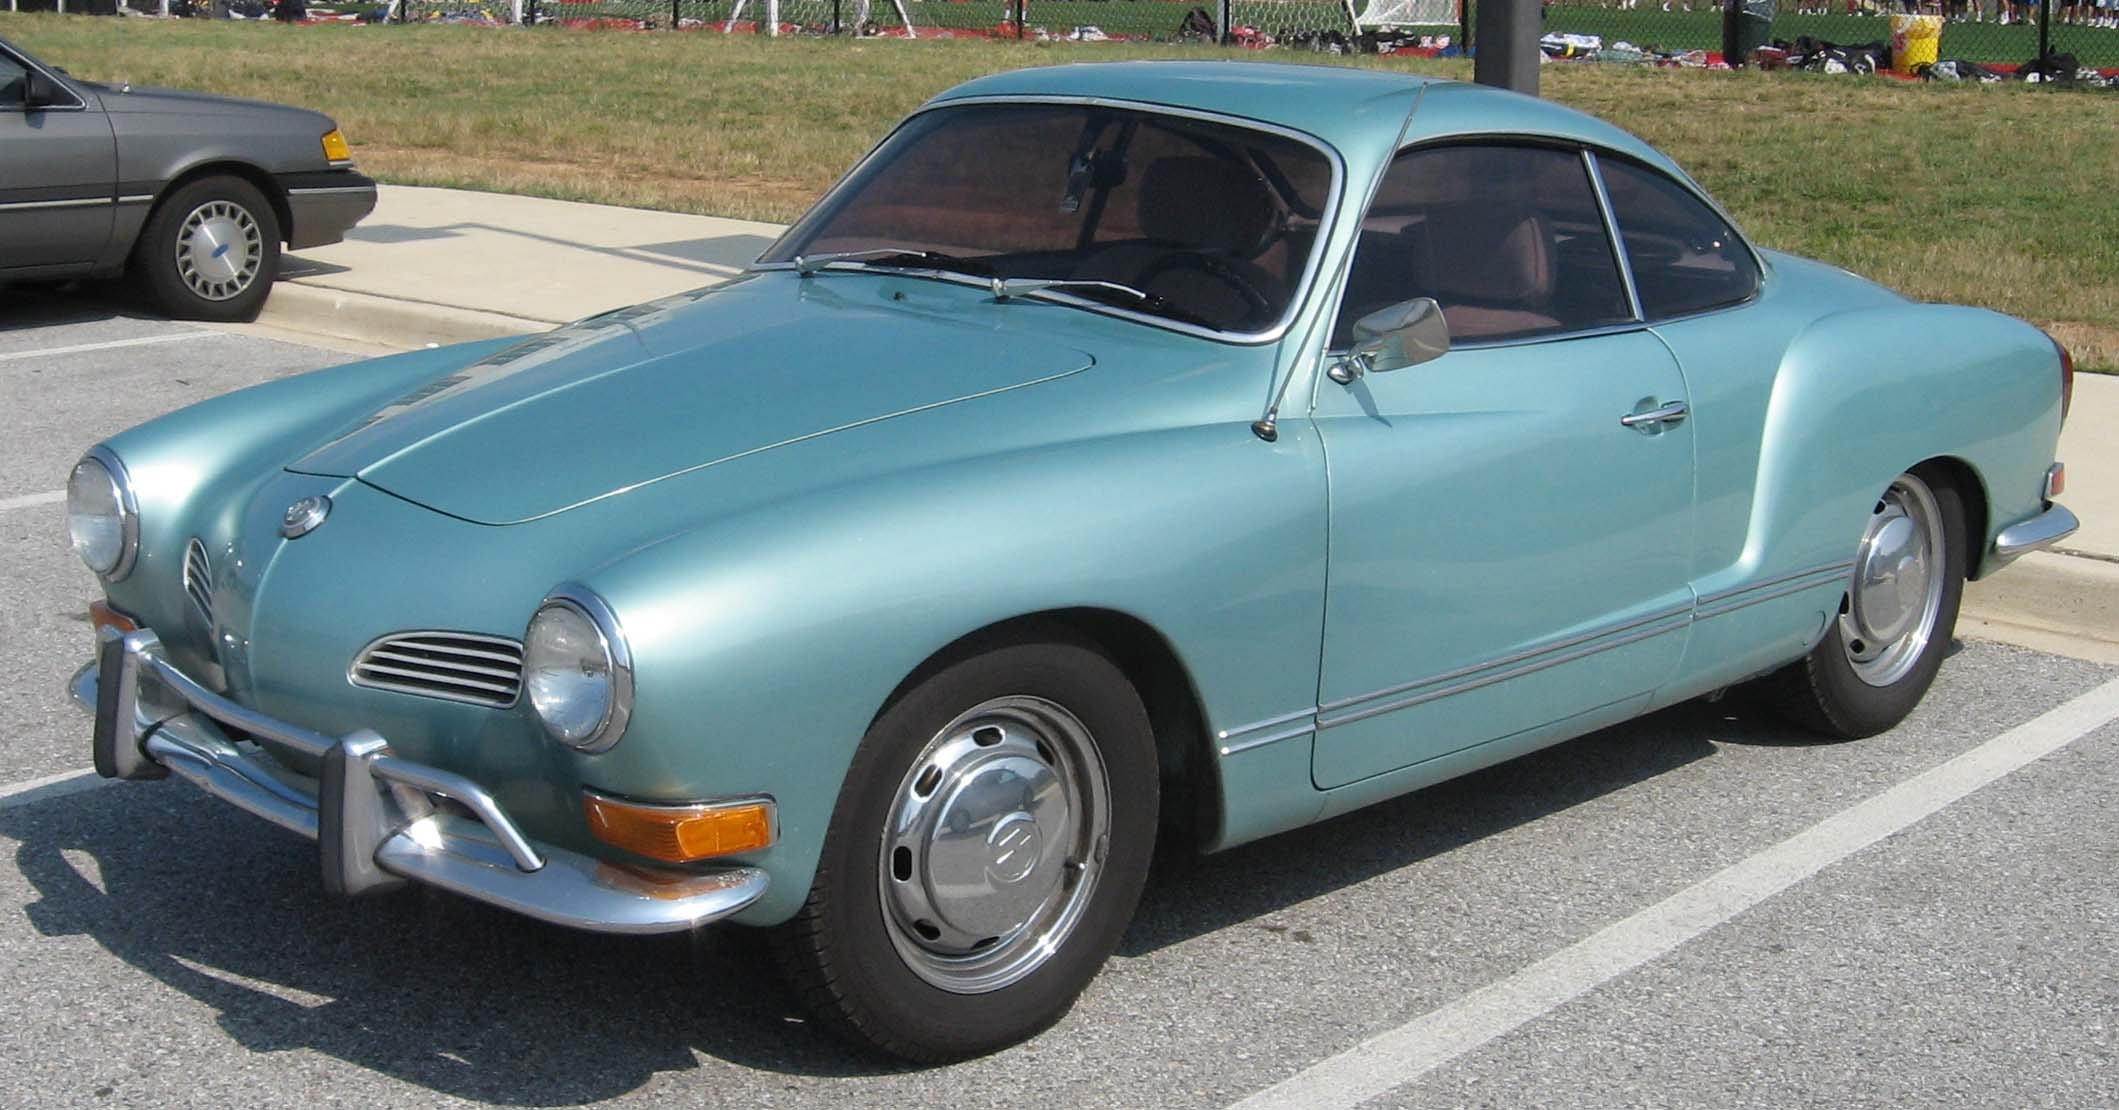 Cars for Sale Near Me Under 3000 Beautiful 10 Underrated American Cars for Under $5 000 Thrillist